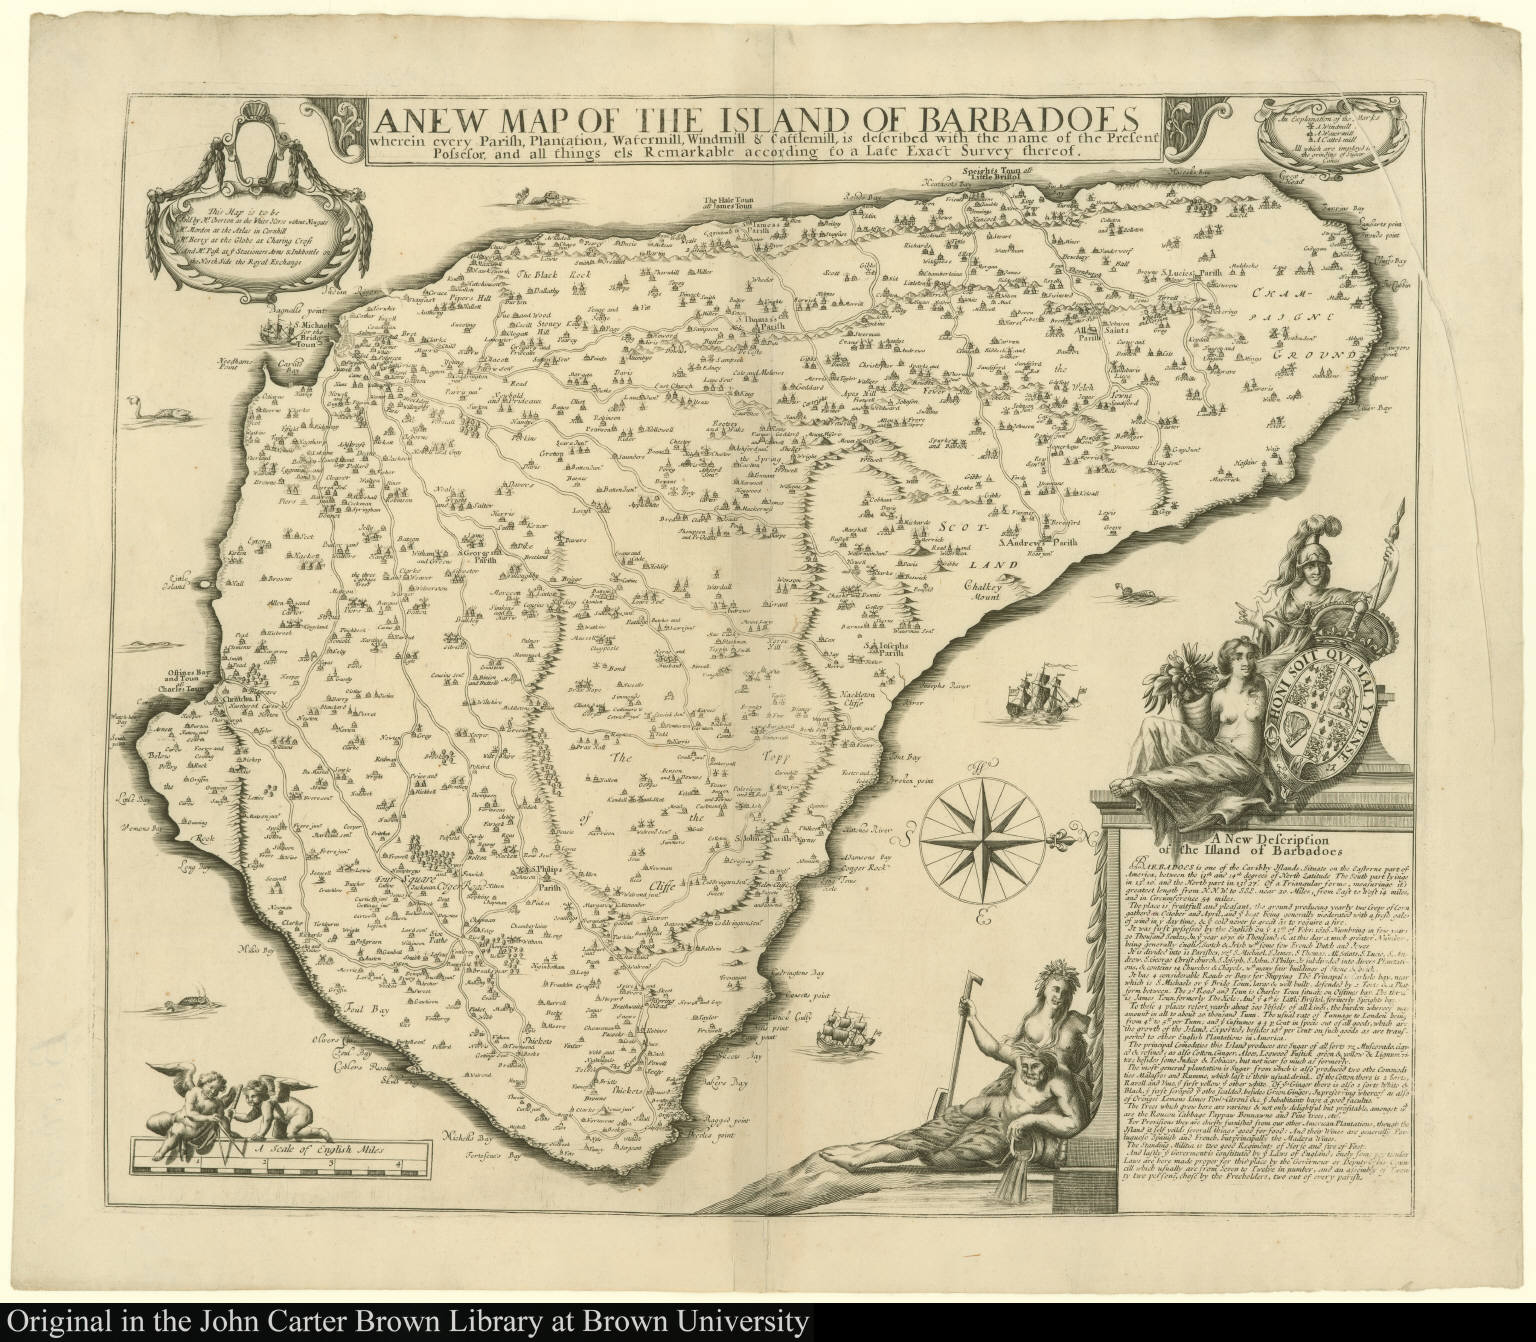 A New Map of the Island of Barbadoes wherein every Parish, Plantation, Watermill, Windmill & Cattlemill, is described ...